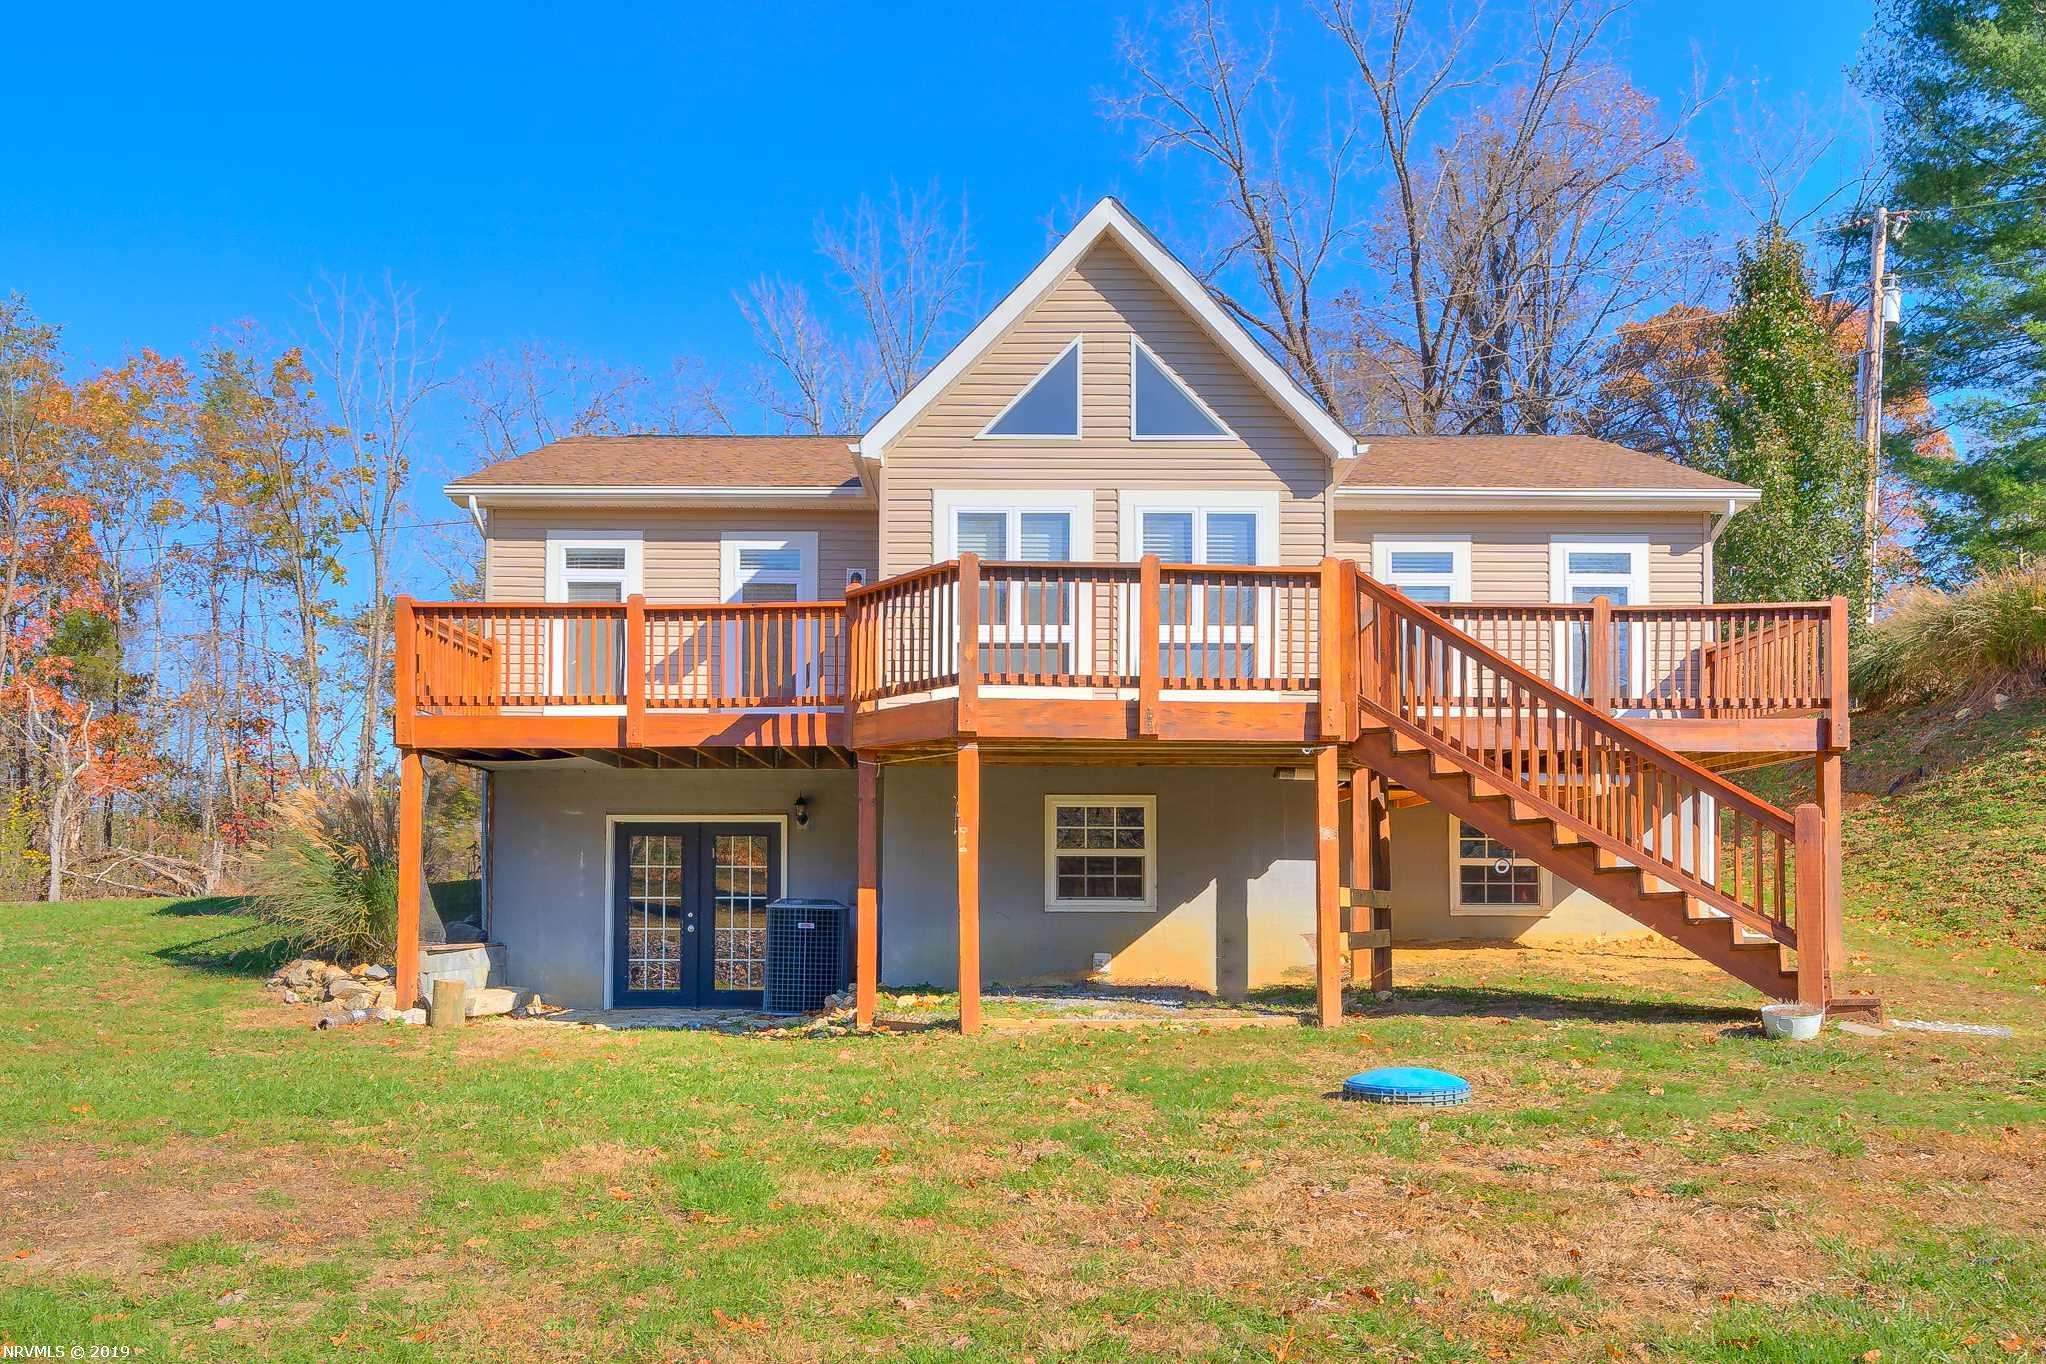 Beautiful home with Claytor Lake views! Built in 2005, this home has an open floor plan with vaulted ceilings and exposed beams. The split bedroom design offers privacy with the master suite on one side and the additional bedrooms on the other. Light and airy, this home has wide-plank hardwood flooring throughout, a spacious open kitchen and a main level laundry. If you need more space, the walk-out basement is ready to be finished with your touches. Enjoy the views of Claytor Lake from your spacious rear deck and large back yard! With a paved, private road to your front door and only 3 minutes to I-81 and Claytor Lake State Park, this home is so convenient to most everything. Call today for your private showing!